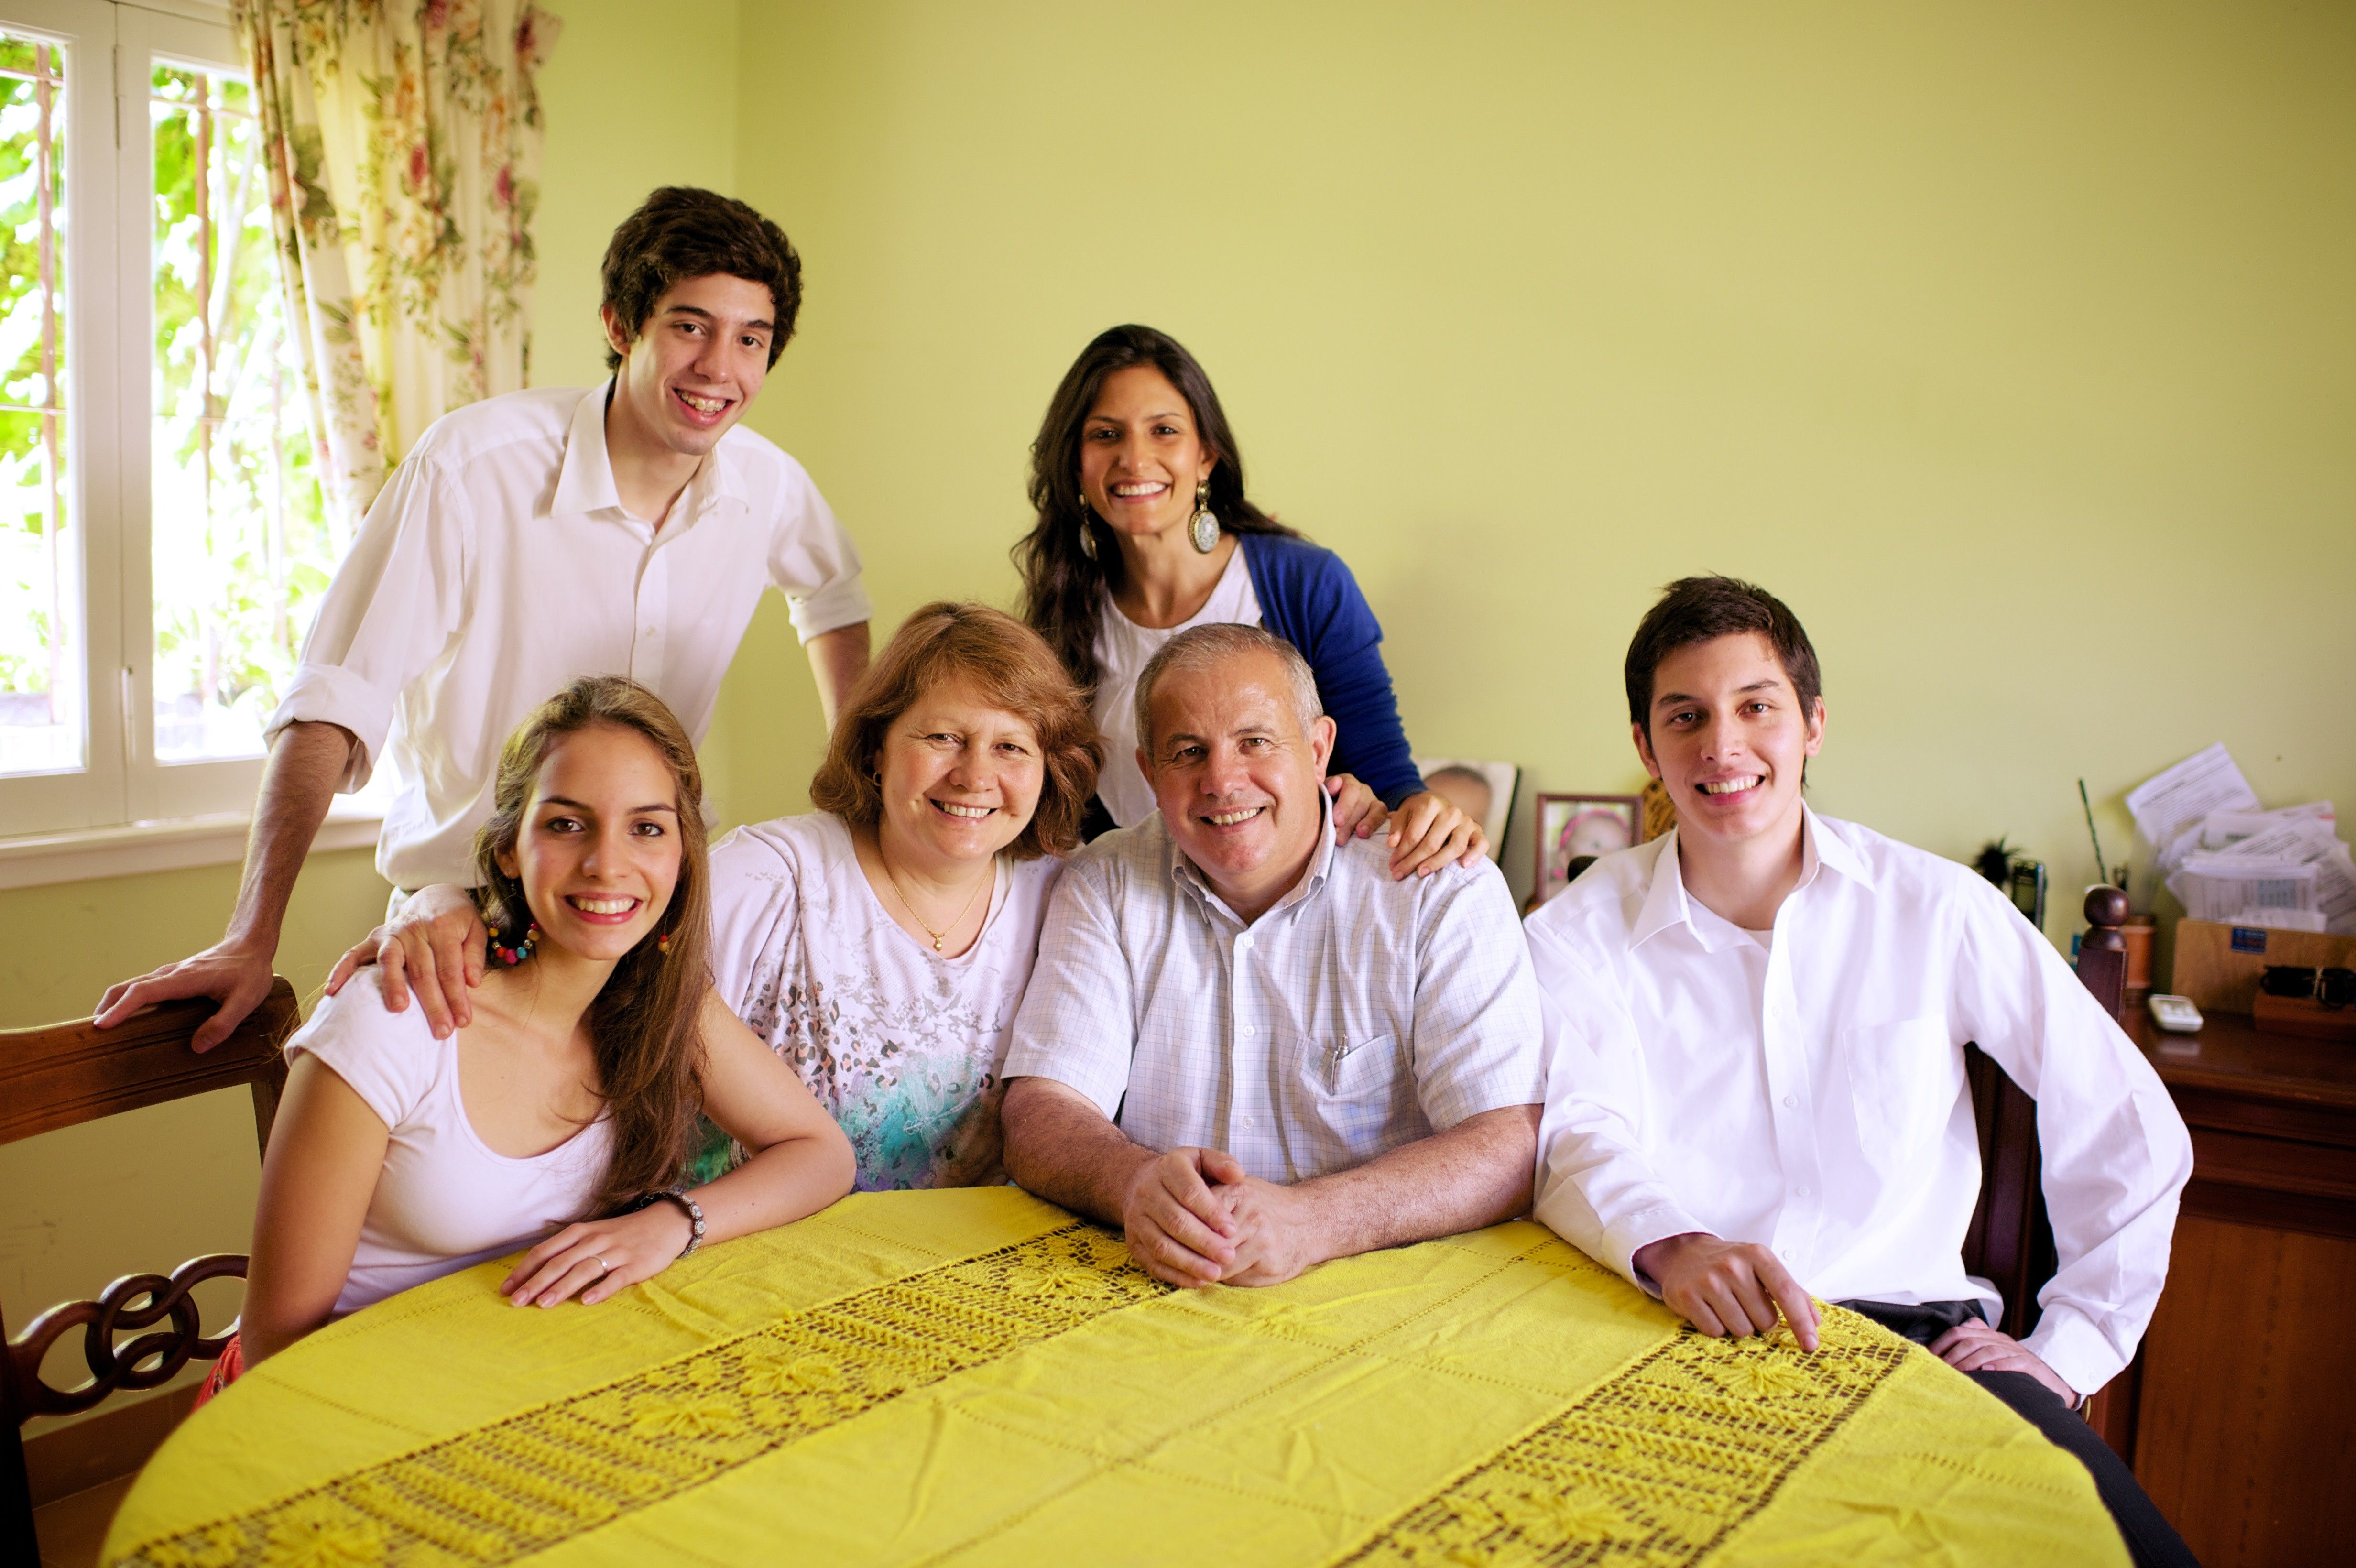 A family from Argentina sits in their home together around the dinner table.